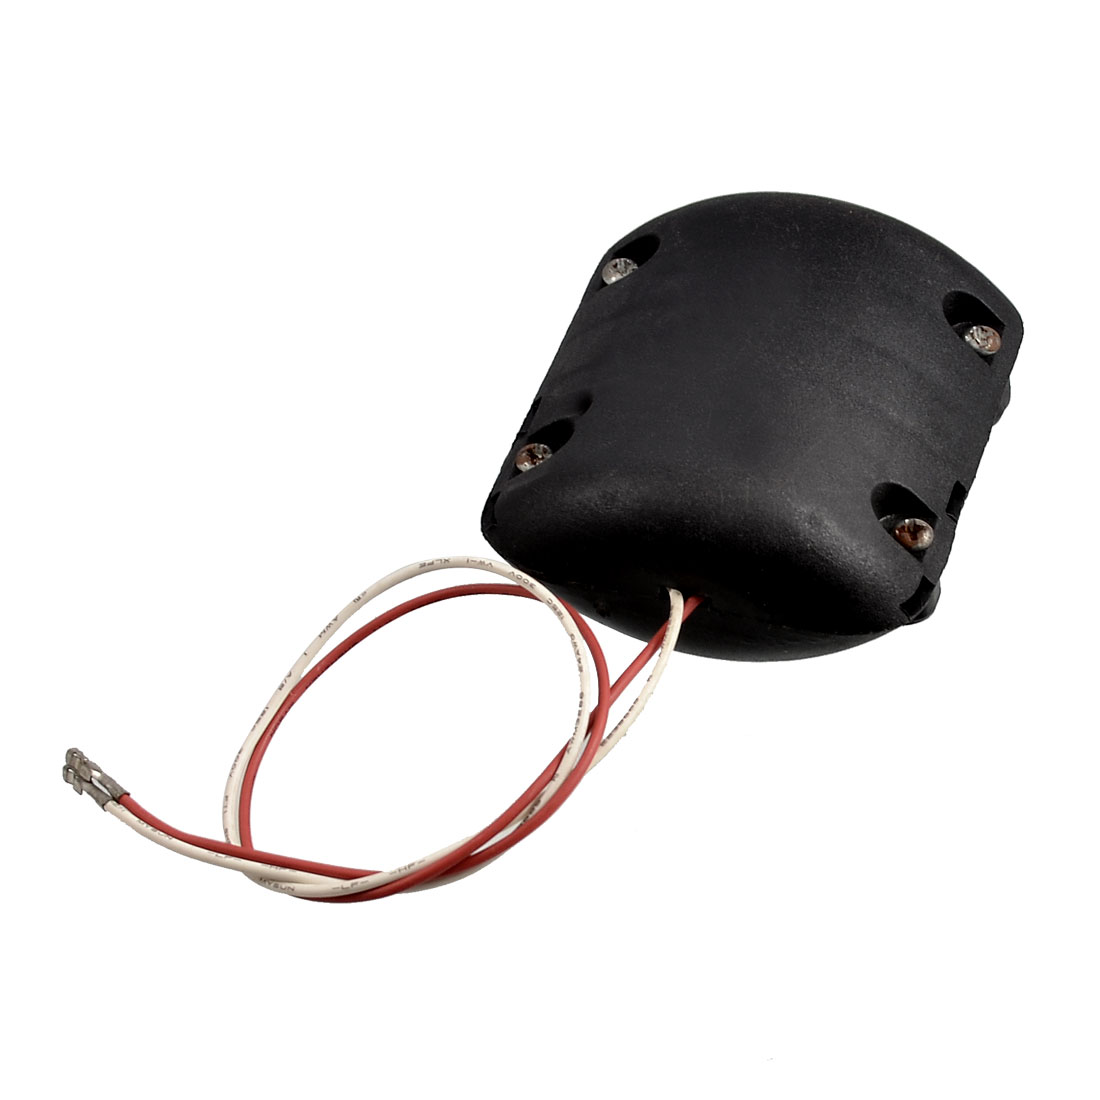 Black-Shell-DC-12V-0-25A-4100RPM-Vibration-Motor-for-Massage-Cushion